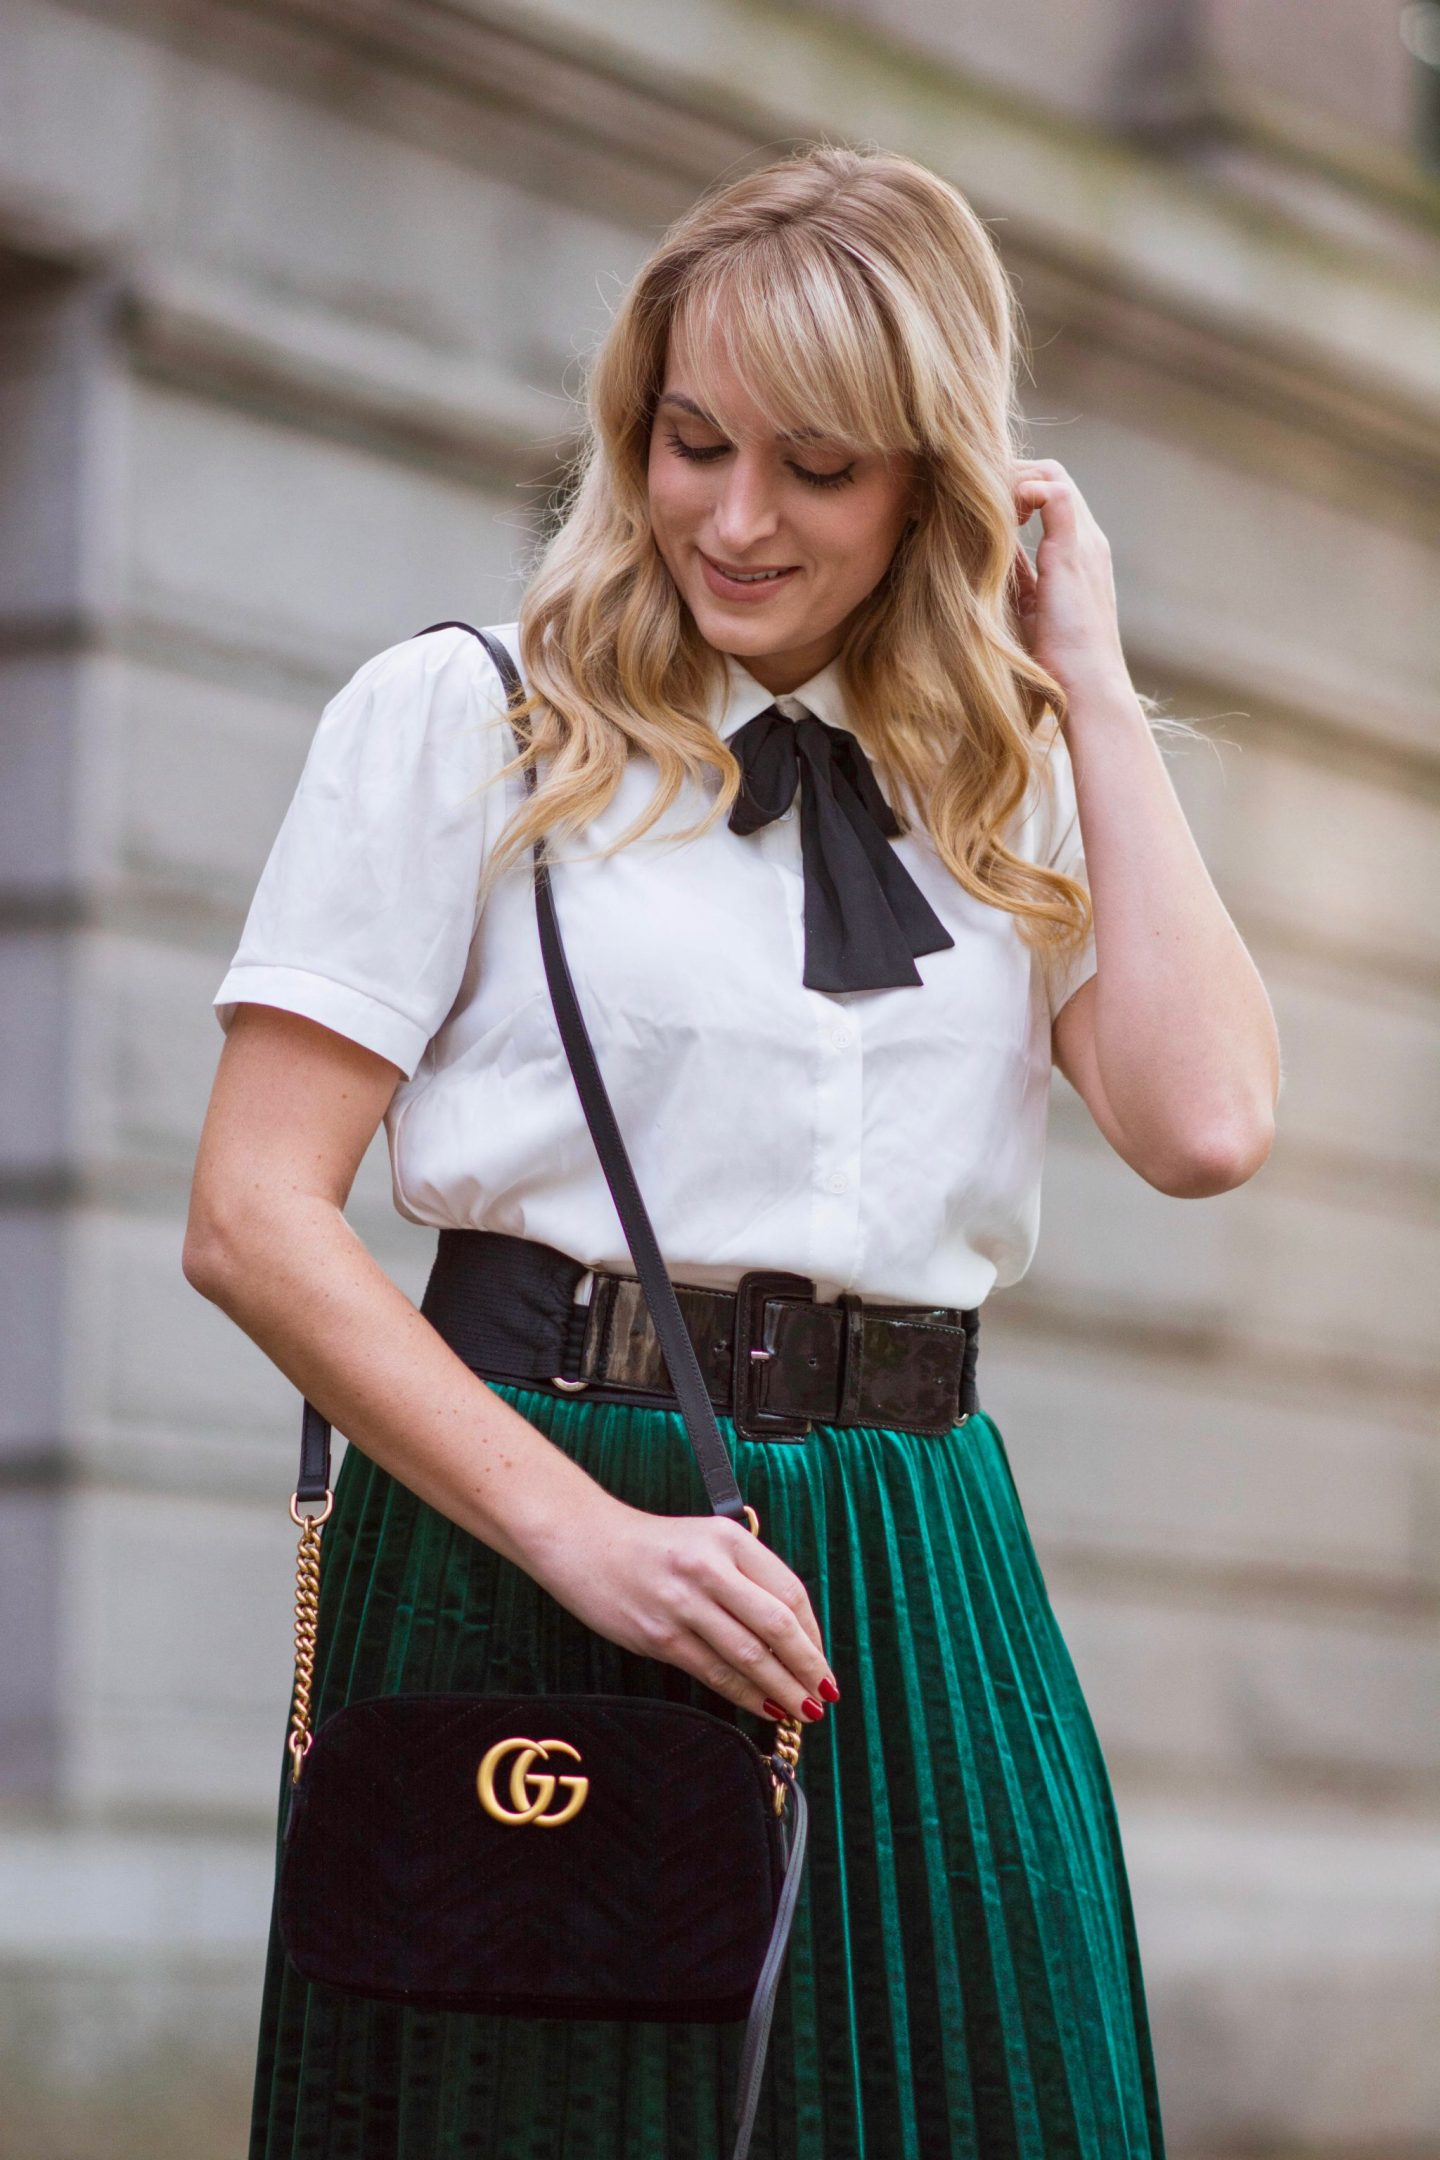 blonde-wearing-blouse-green-pleated-skirt-gucci-bag